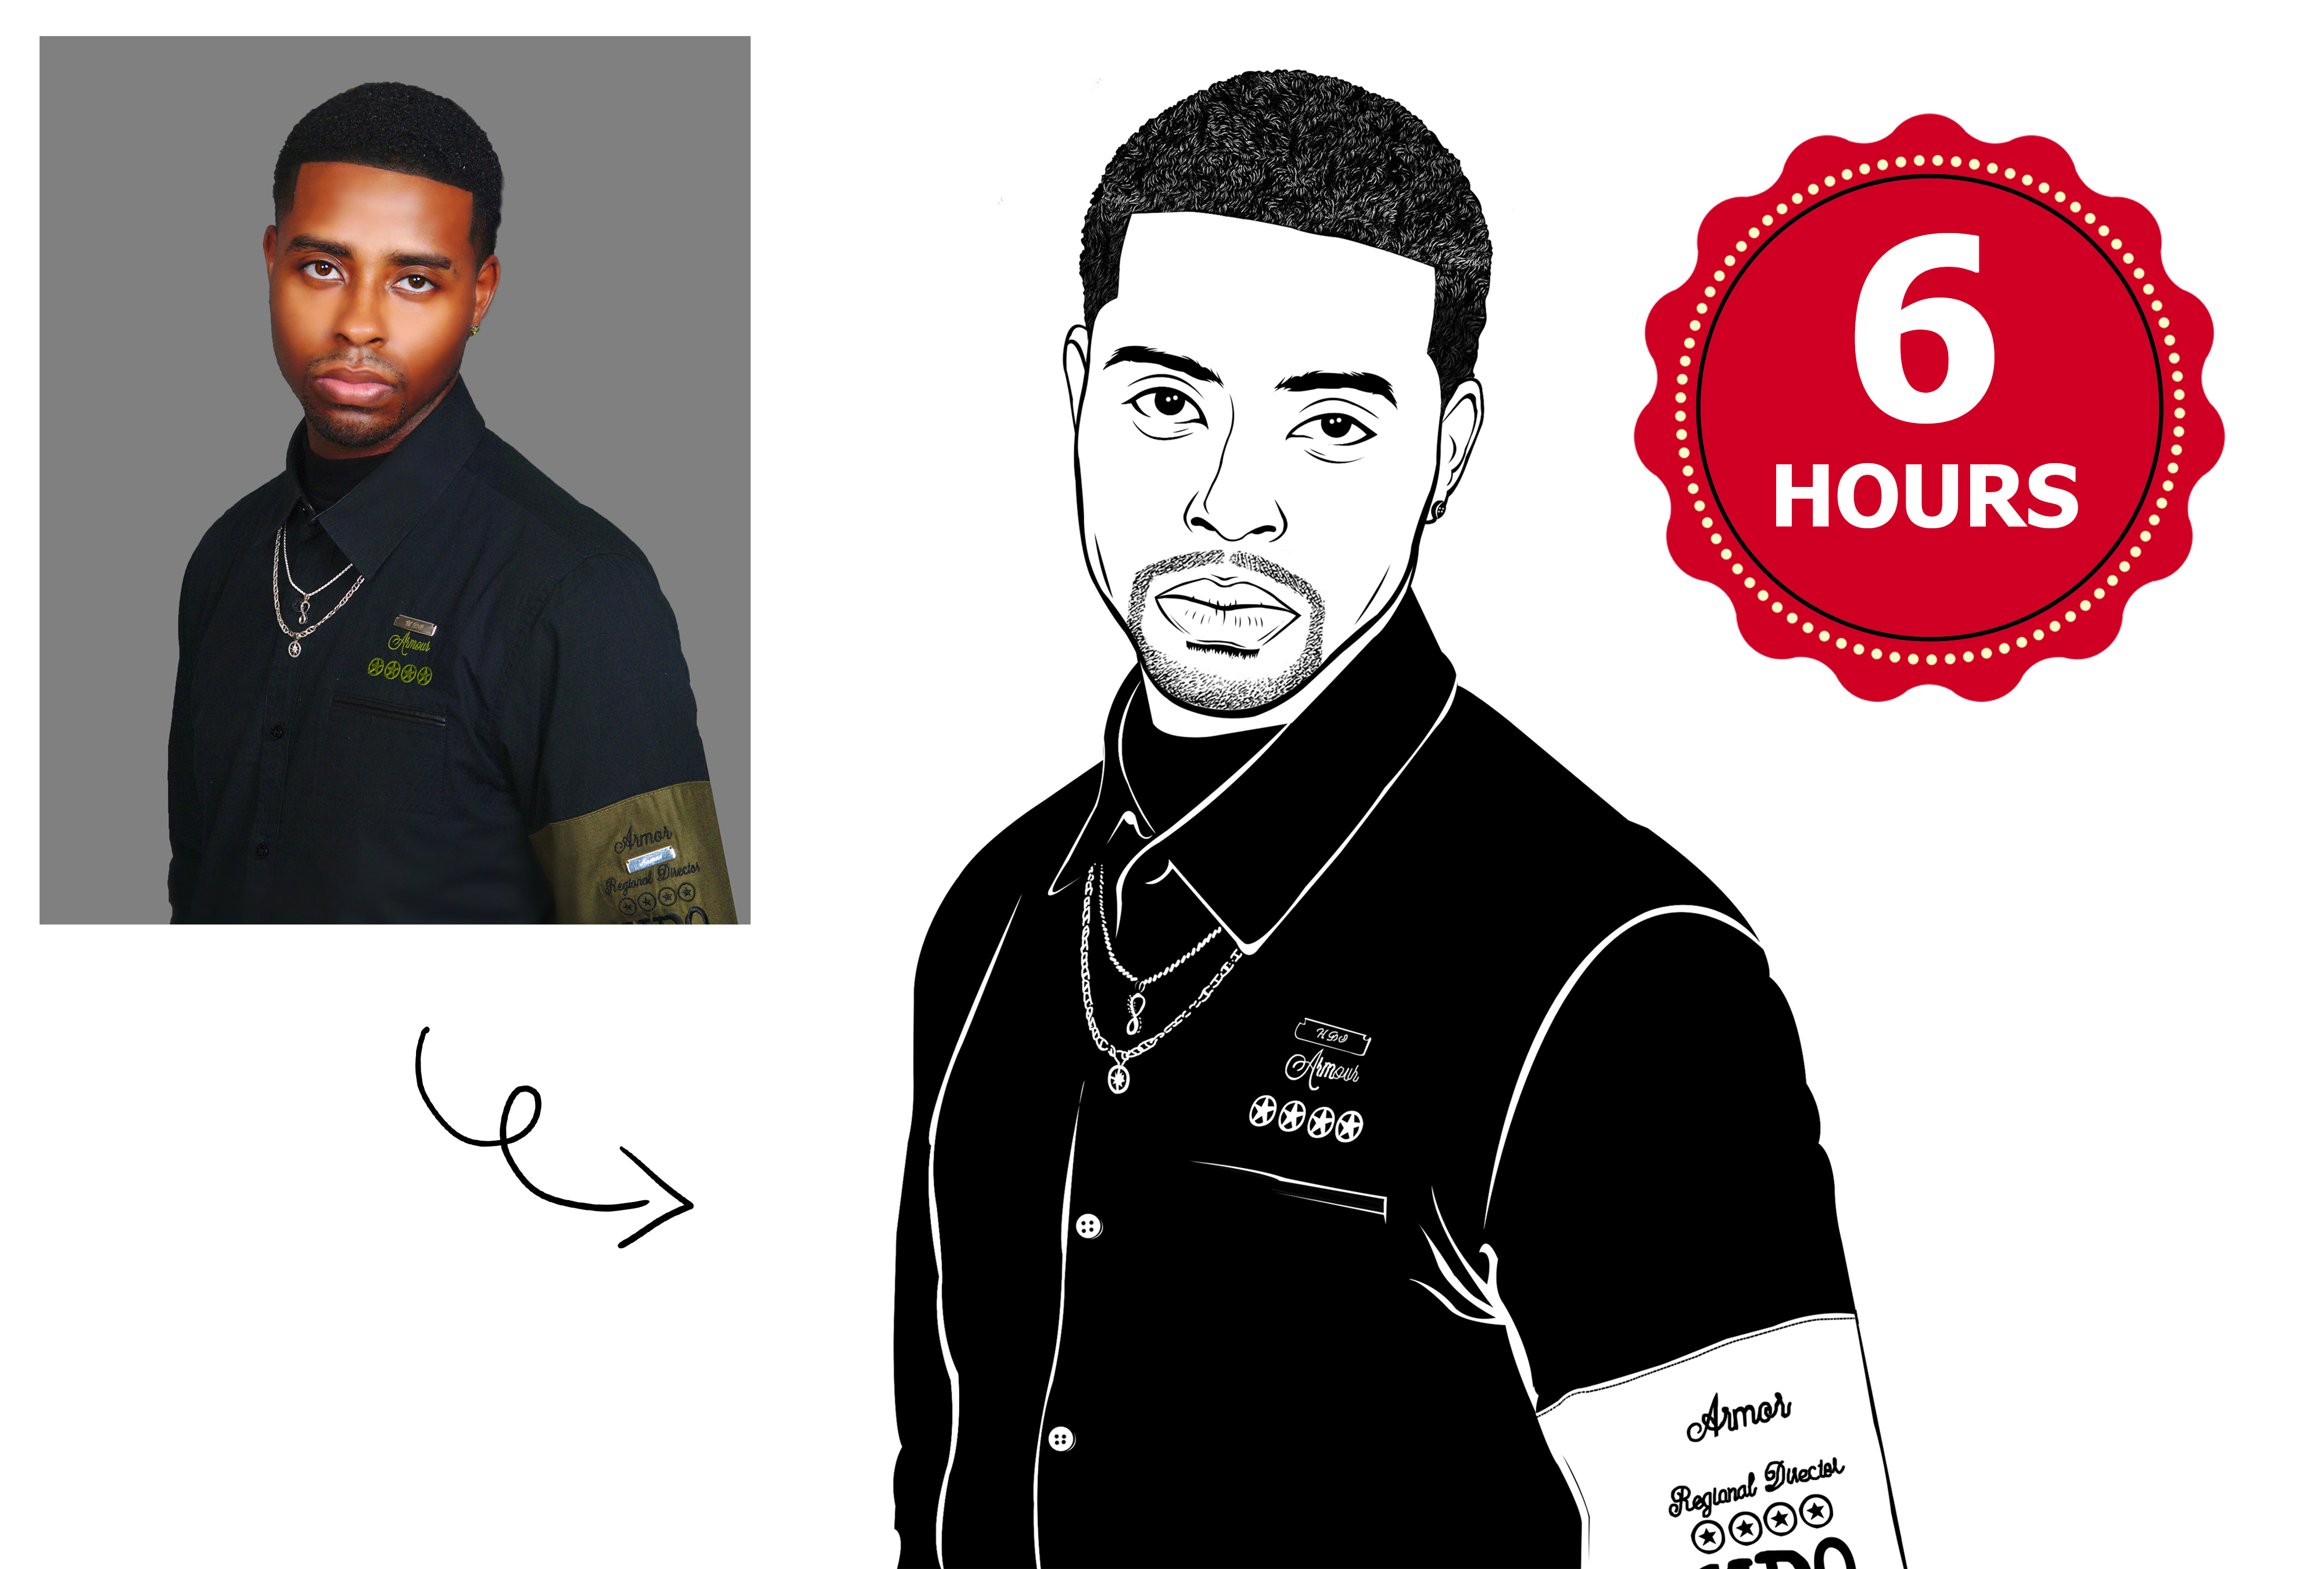 Draw Line Art Illustration Of Your Photo